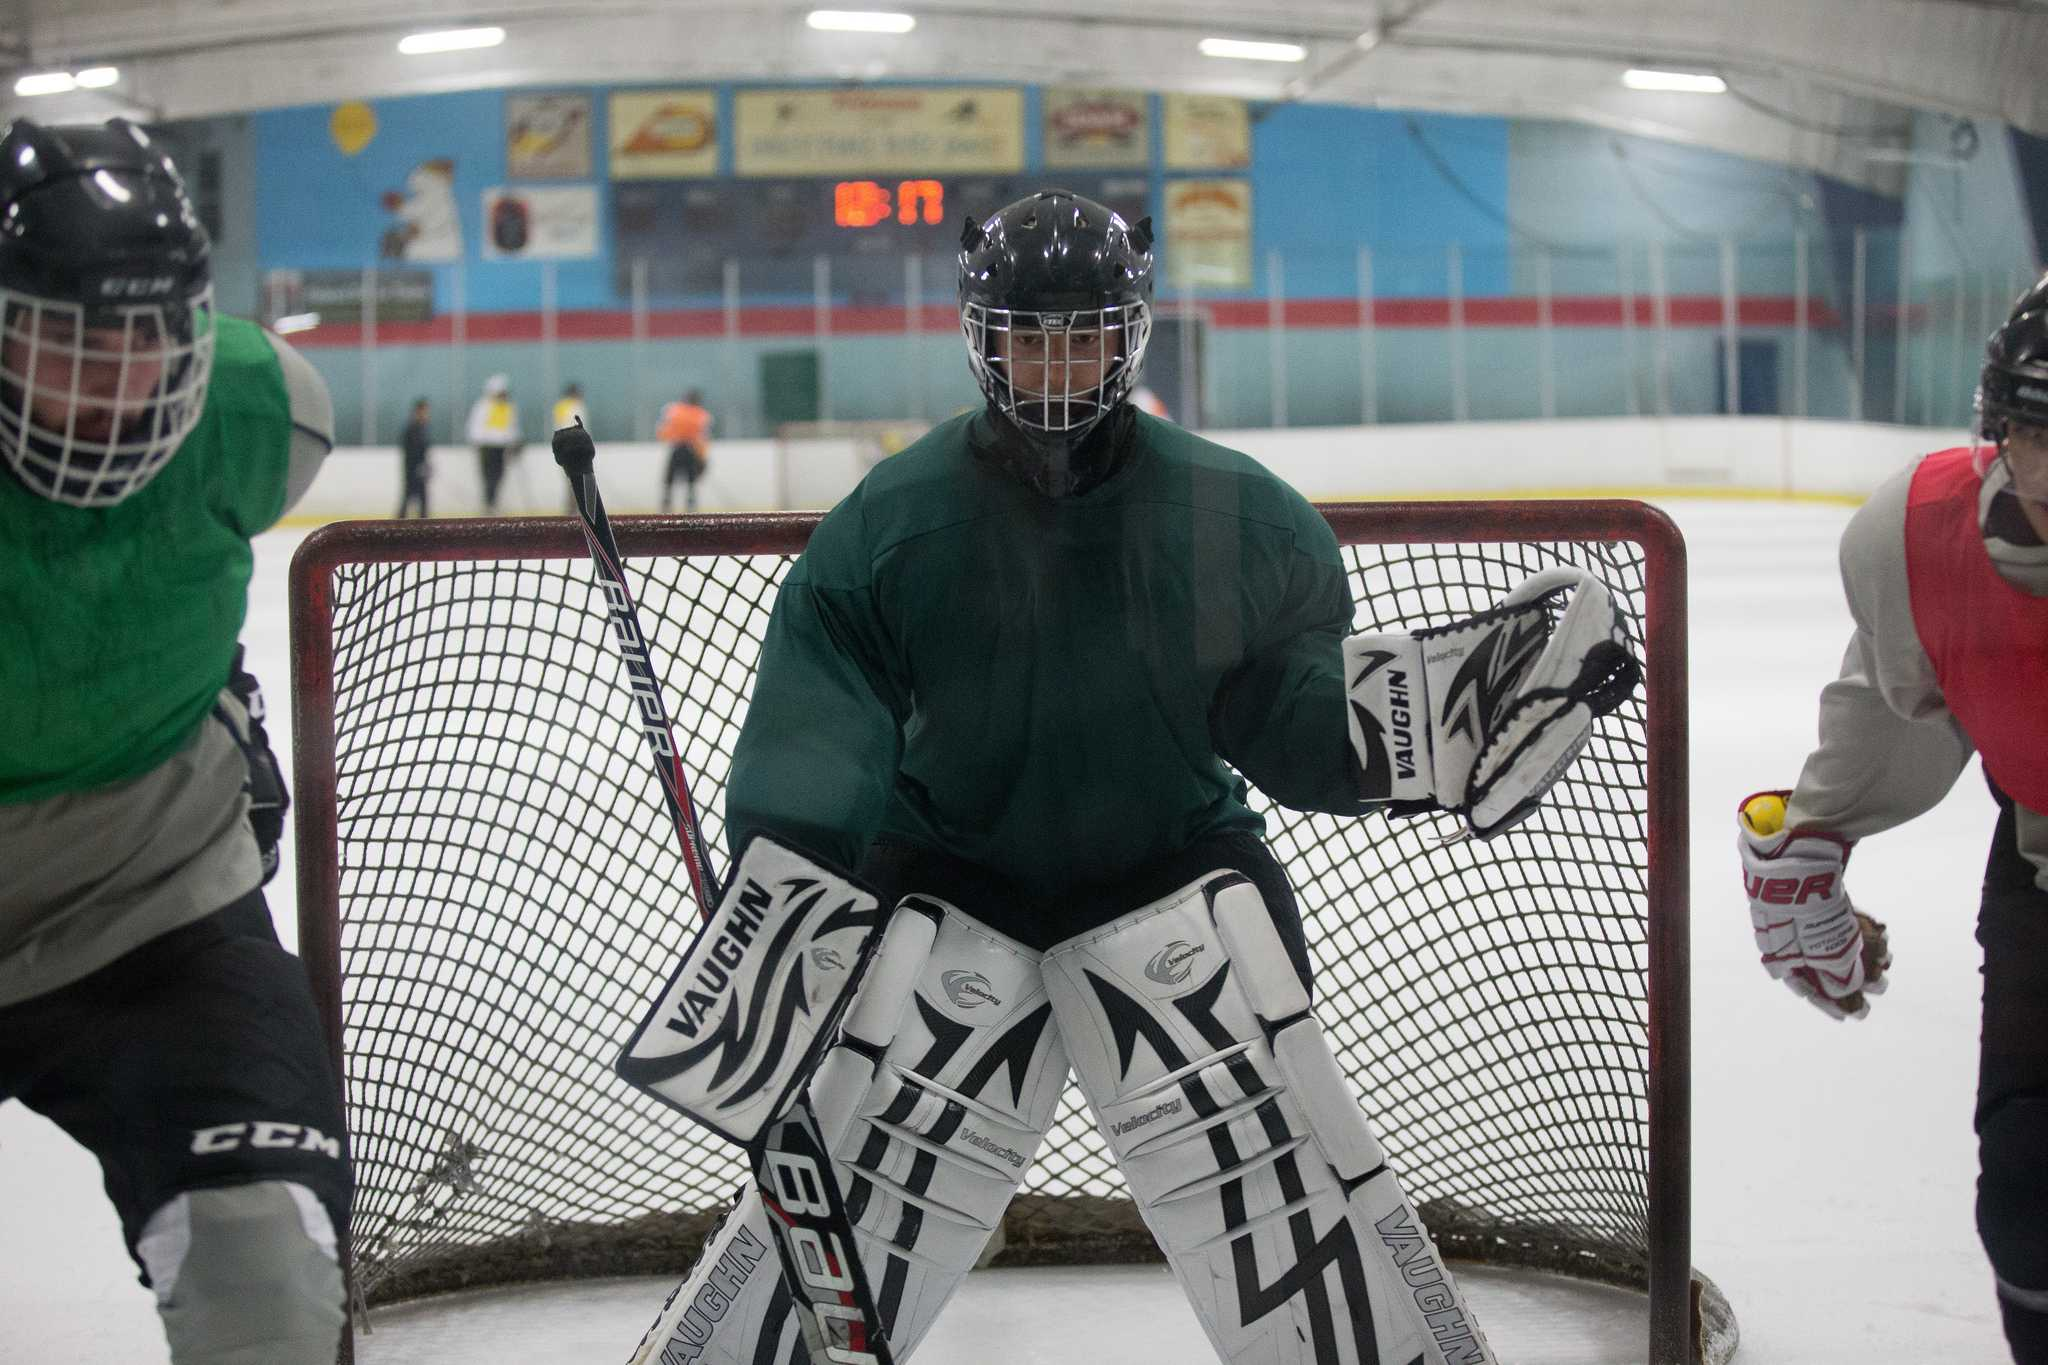 Goalie Patrick Maris drills with teammates during practice at Nazareth Ice Oasis in Redwood City, Calif., Sunday, Sept. 13, 2015. (Brian Churchwell / Xpress)